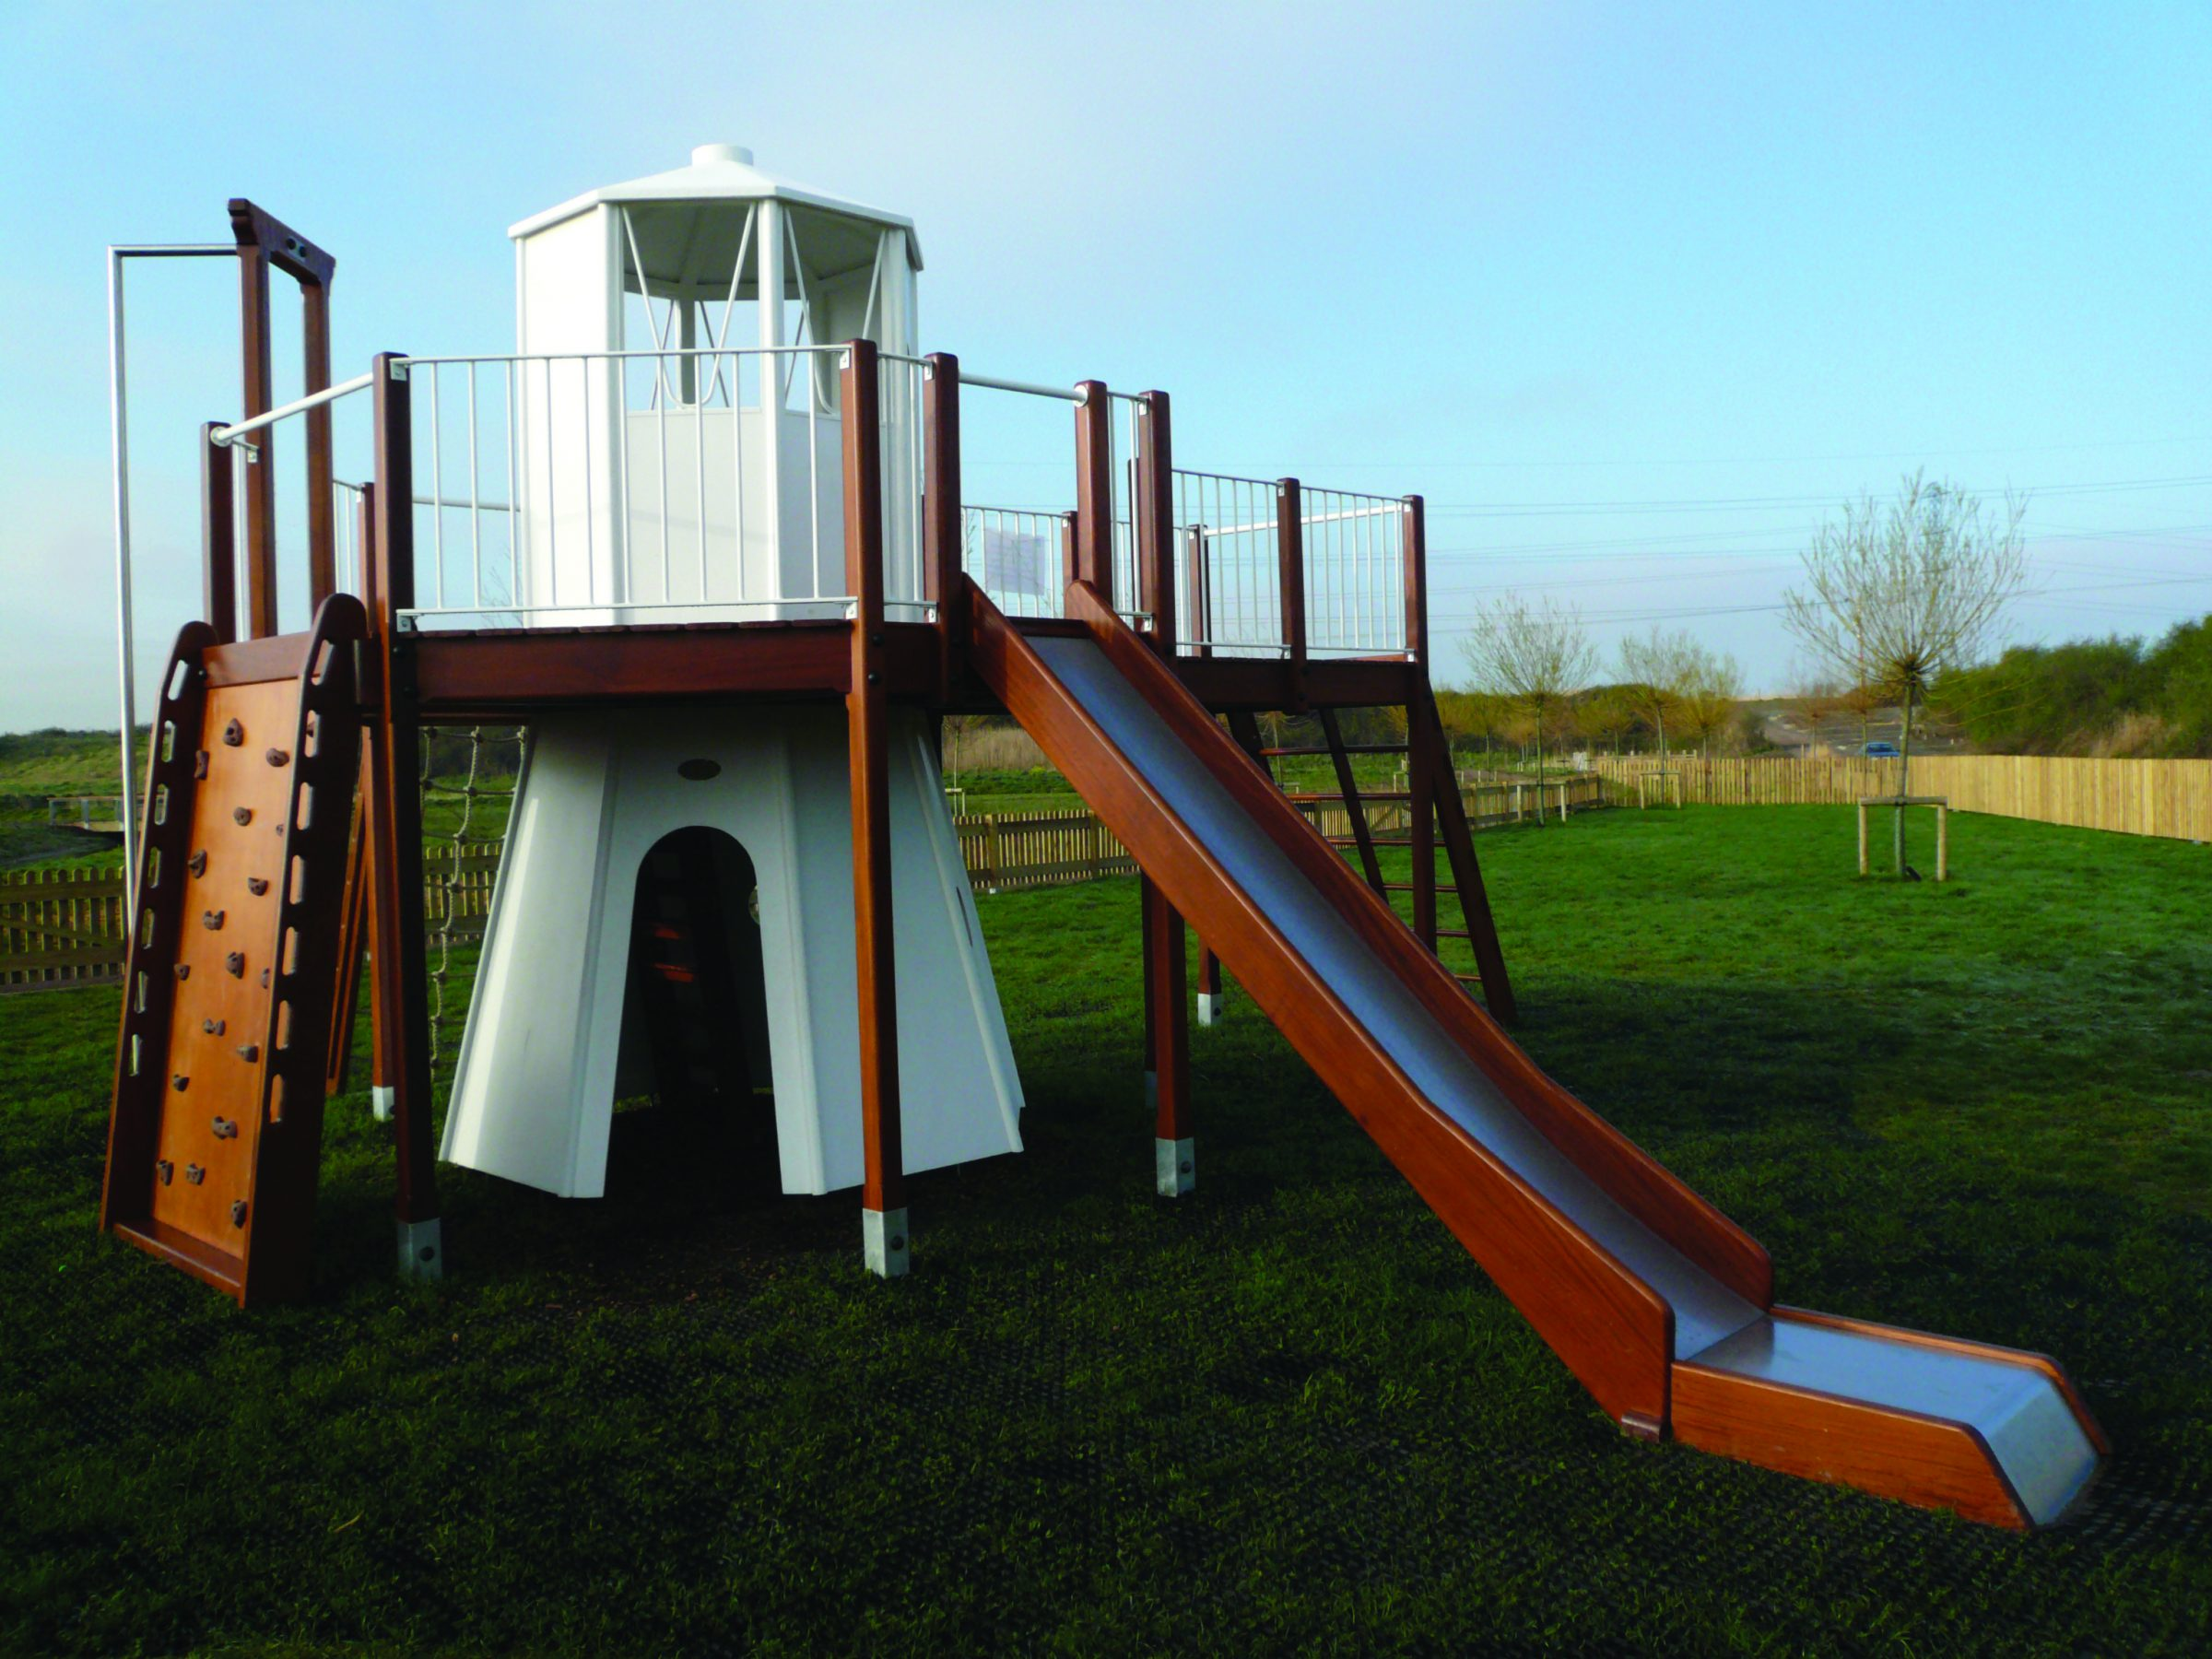 RSPB Newport Replica Lighthouse and Play Area